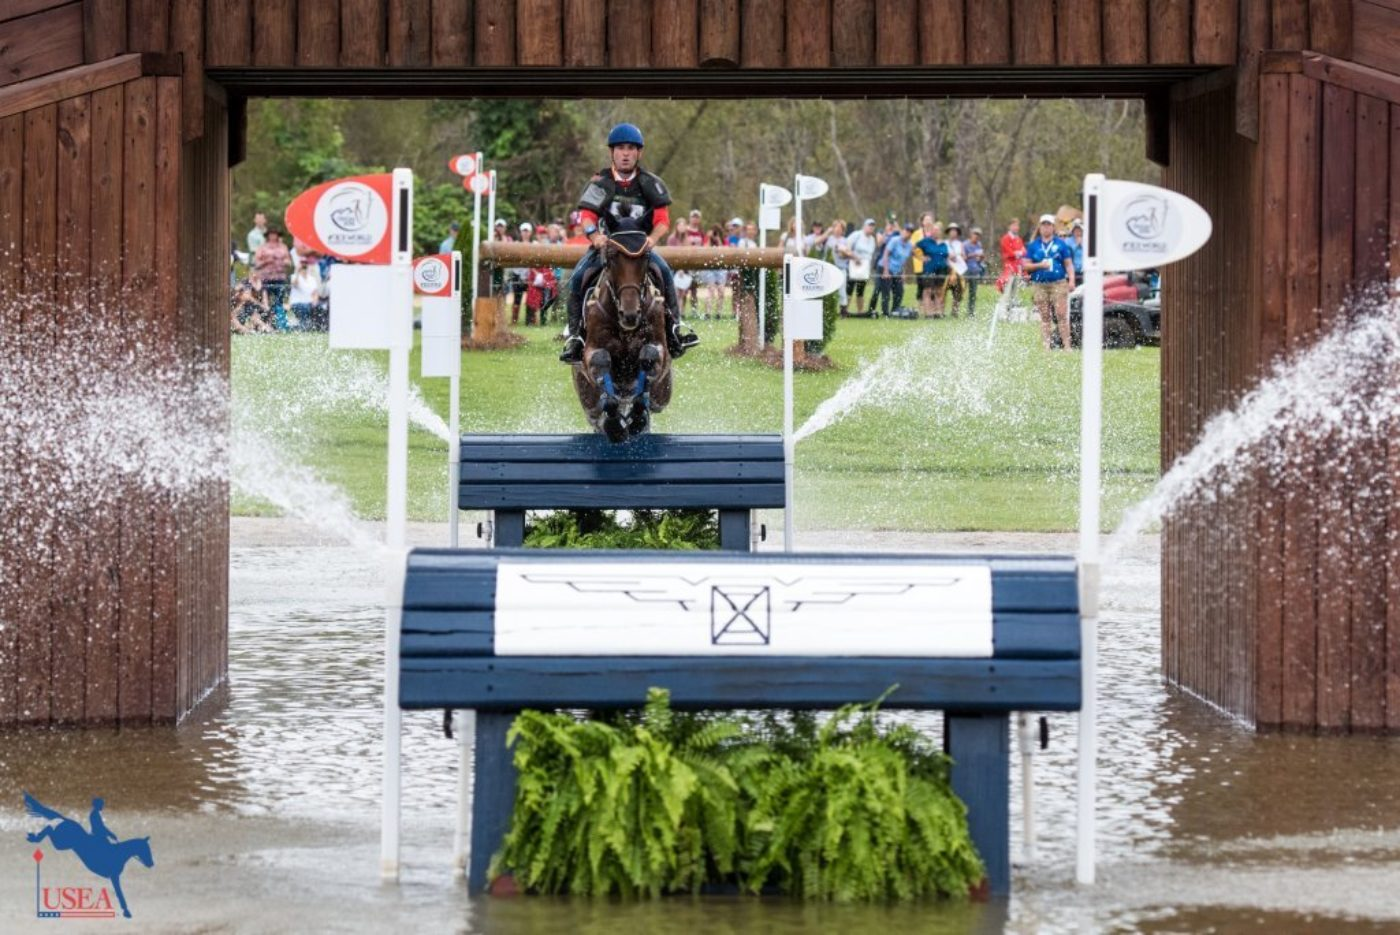 The water fountains certainly didn't faze this pair. USEA/Leslie Mintz Photo.